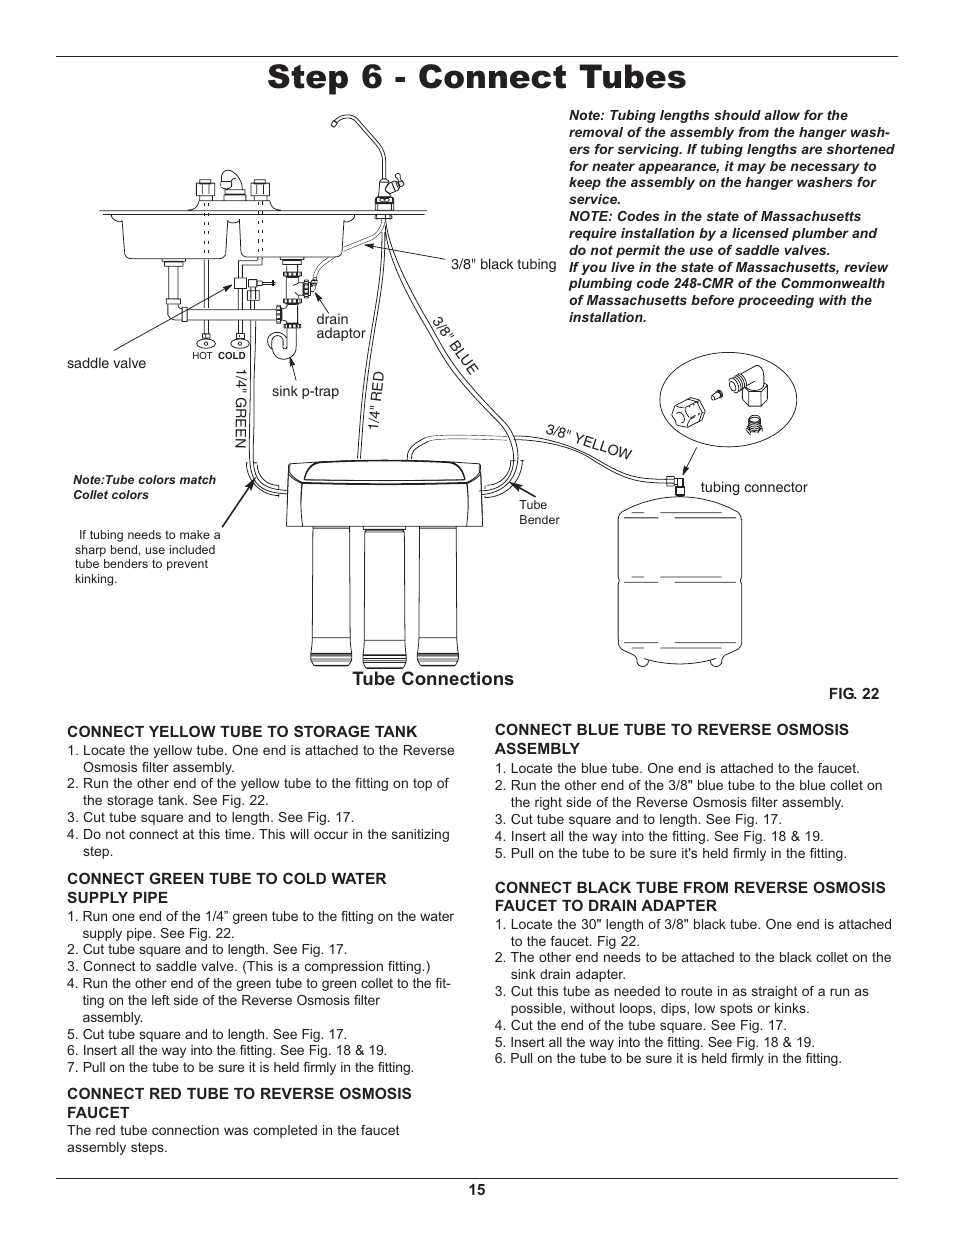 step 6 connect tubes tube connections whirlpool wher25 user rh manualsdir com whirlpool wher25 manual pdf Whirlpool WHER25 Reverse Osmosis Filtration System